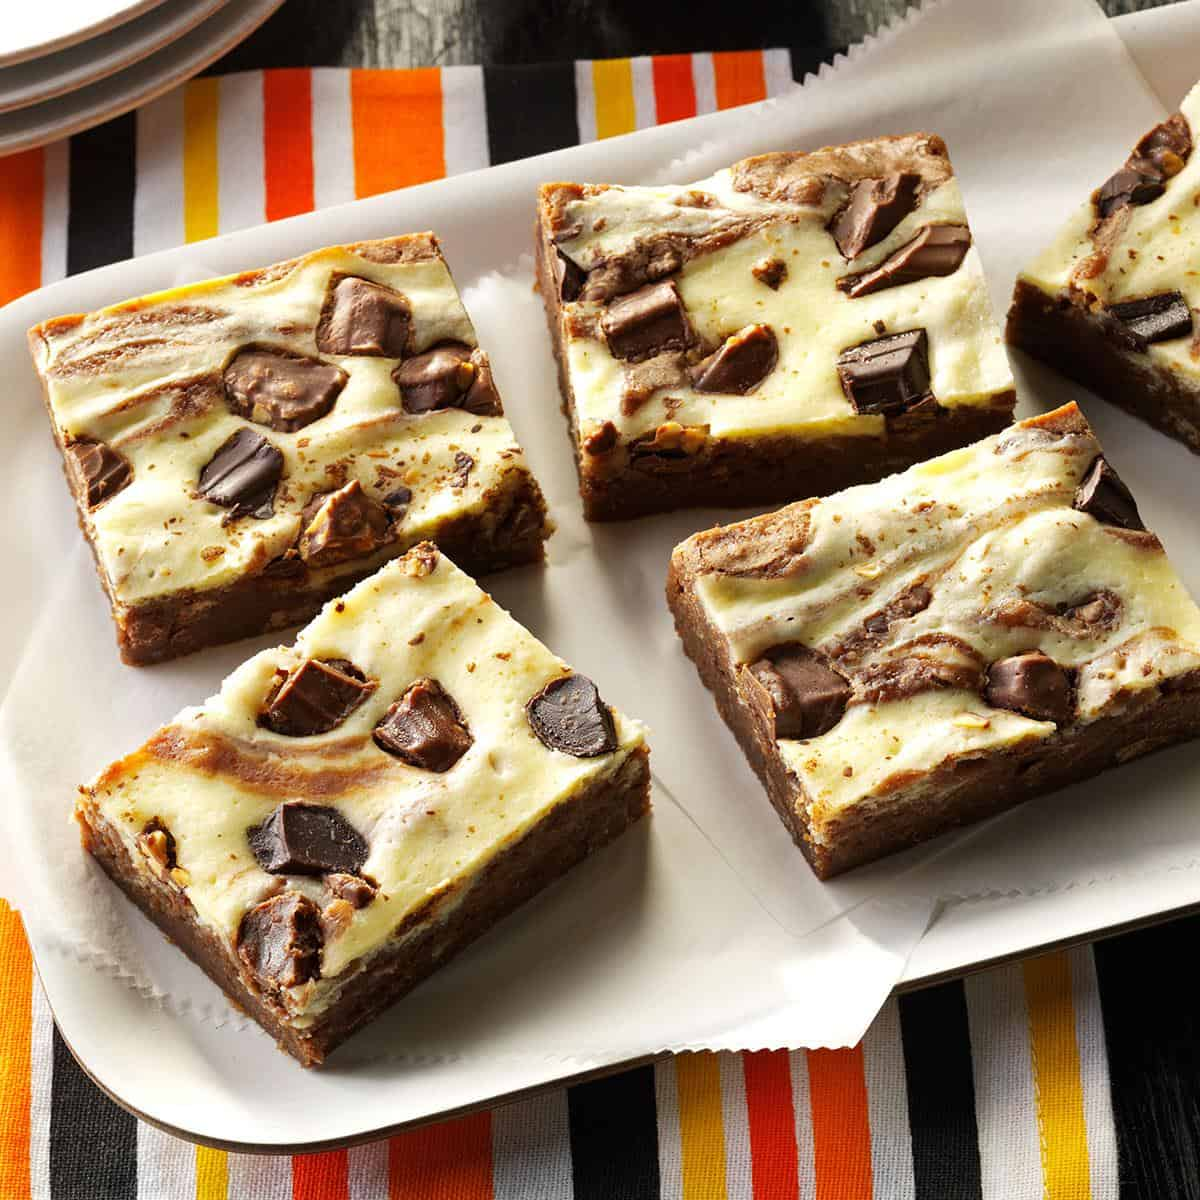 Candy bar cheesecake brownies